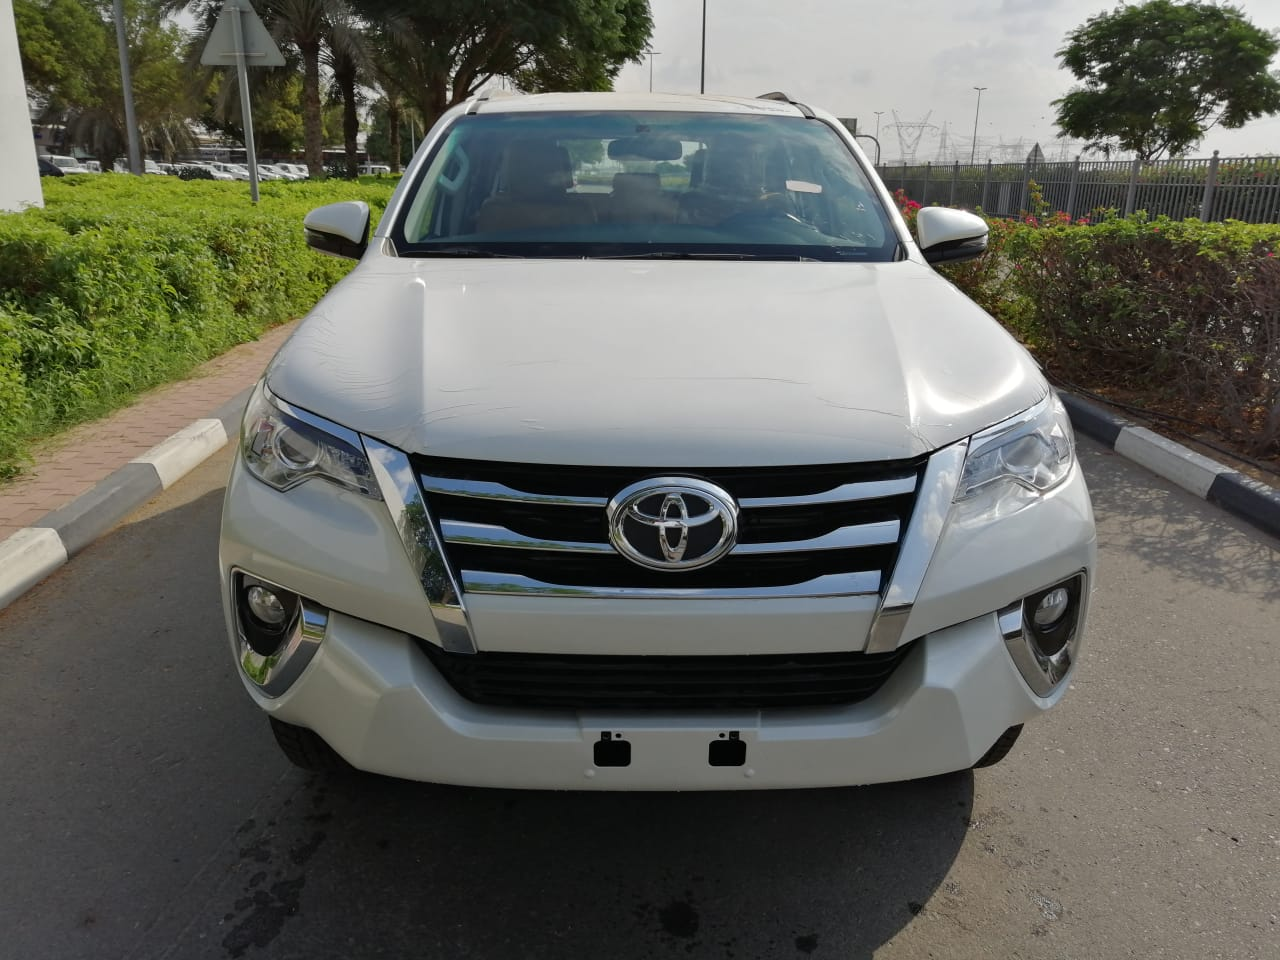 LHD BRAND NEW TOYOTA FORTUNER 2.4L DIESEL A/T - 2019 MODEL